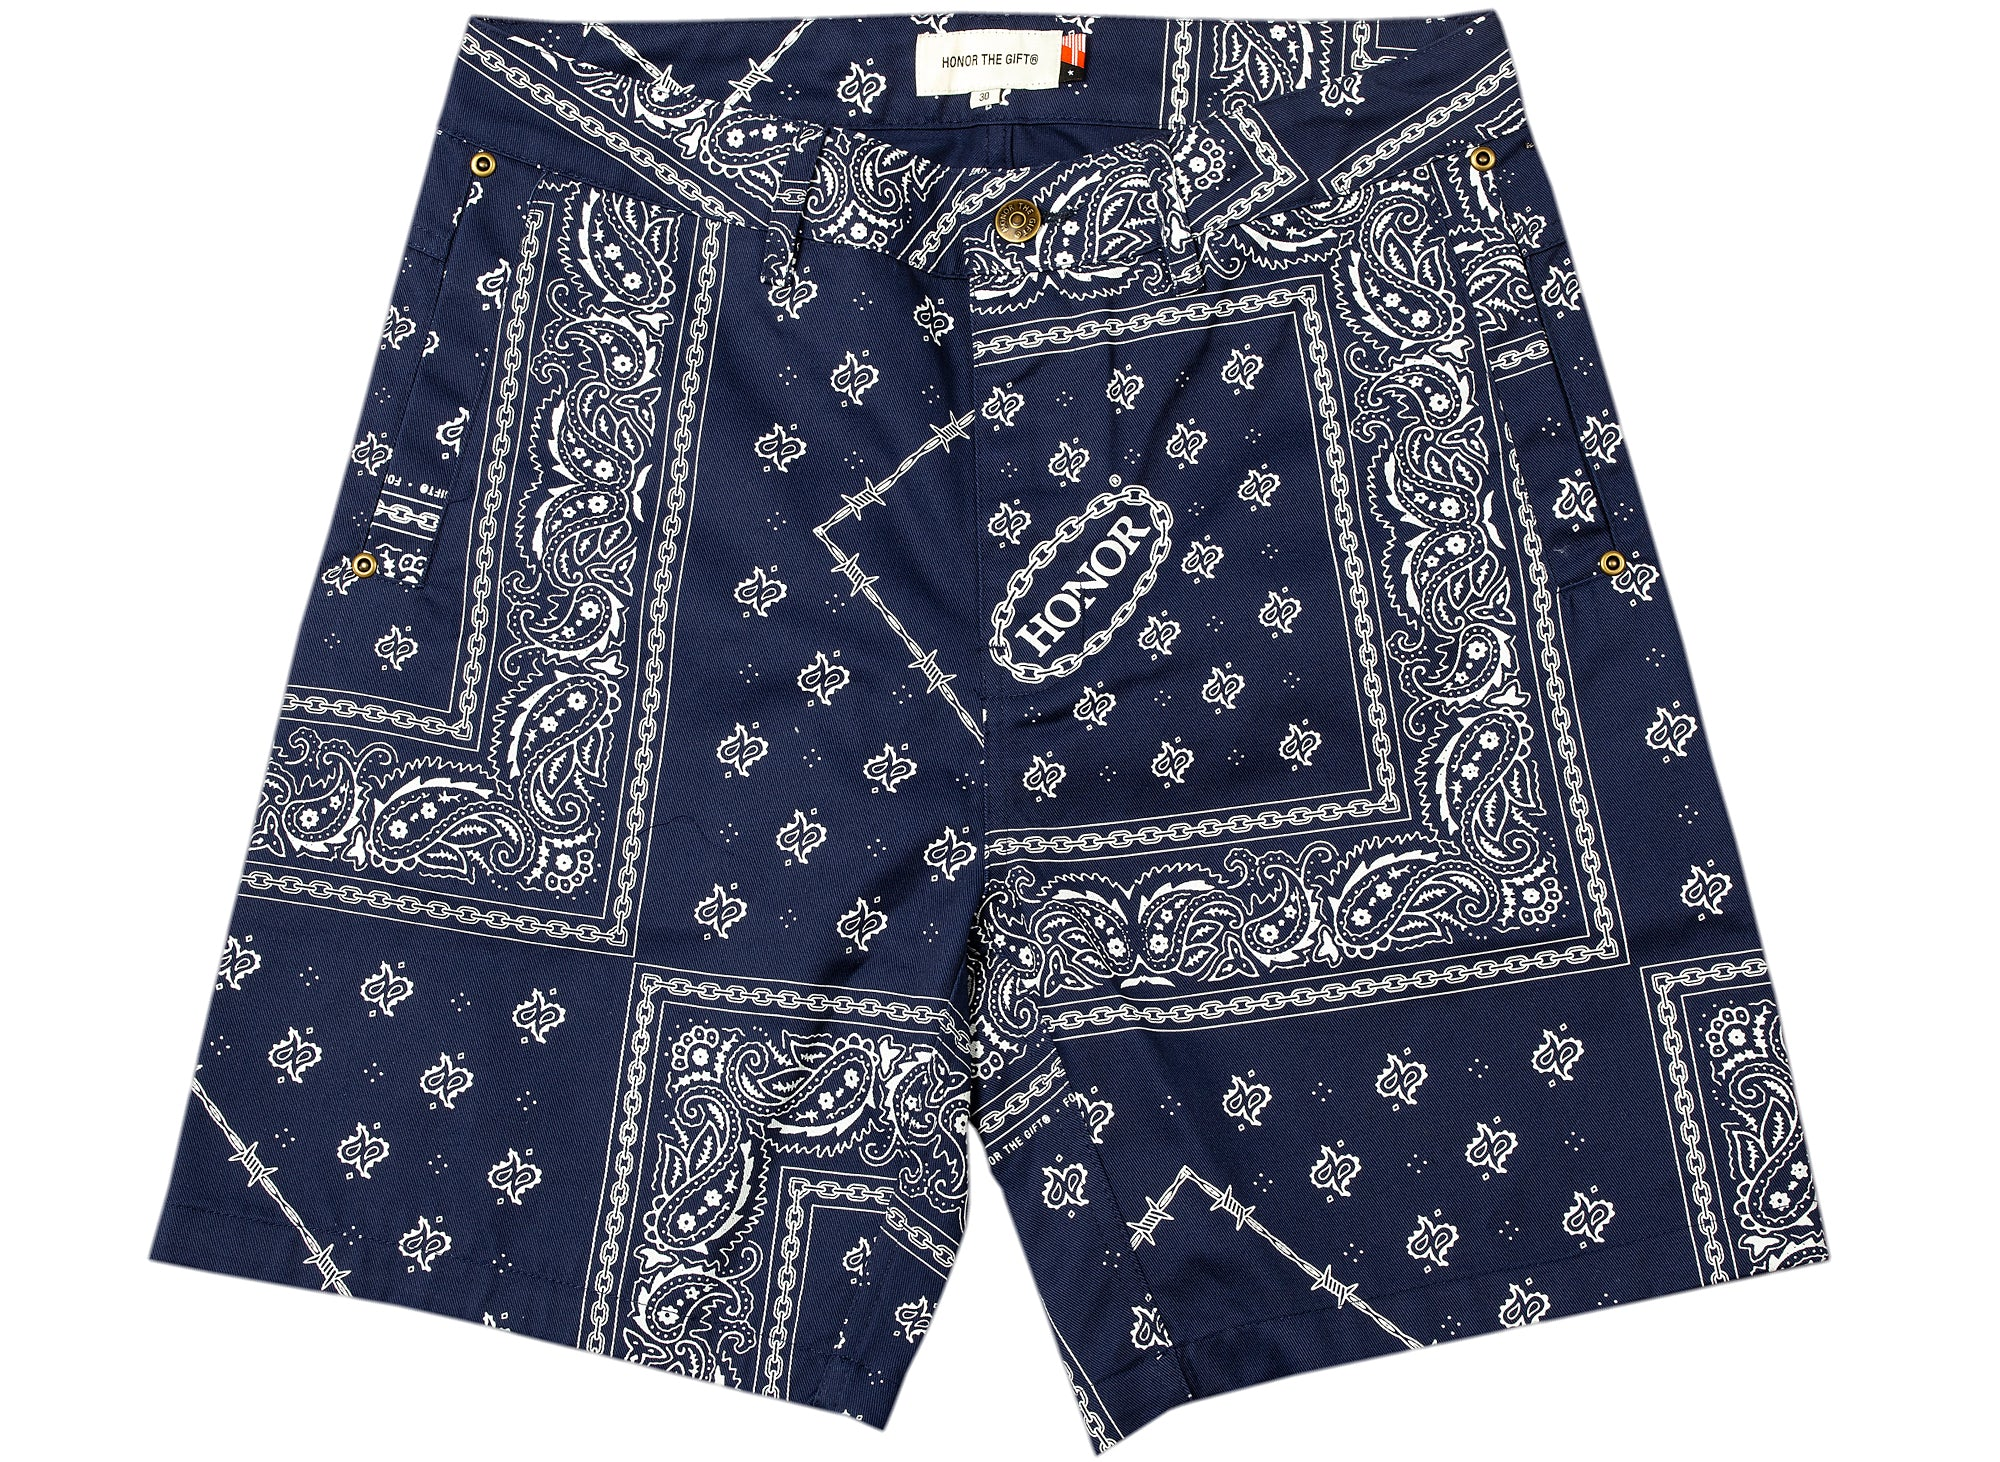 Honor the Gift Bandana Shorts xld